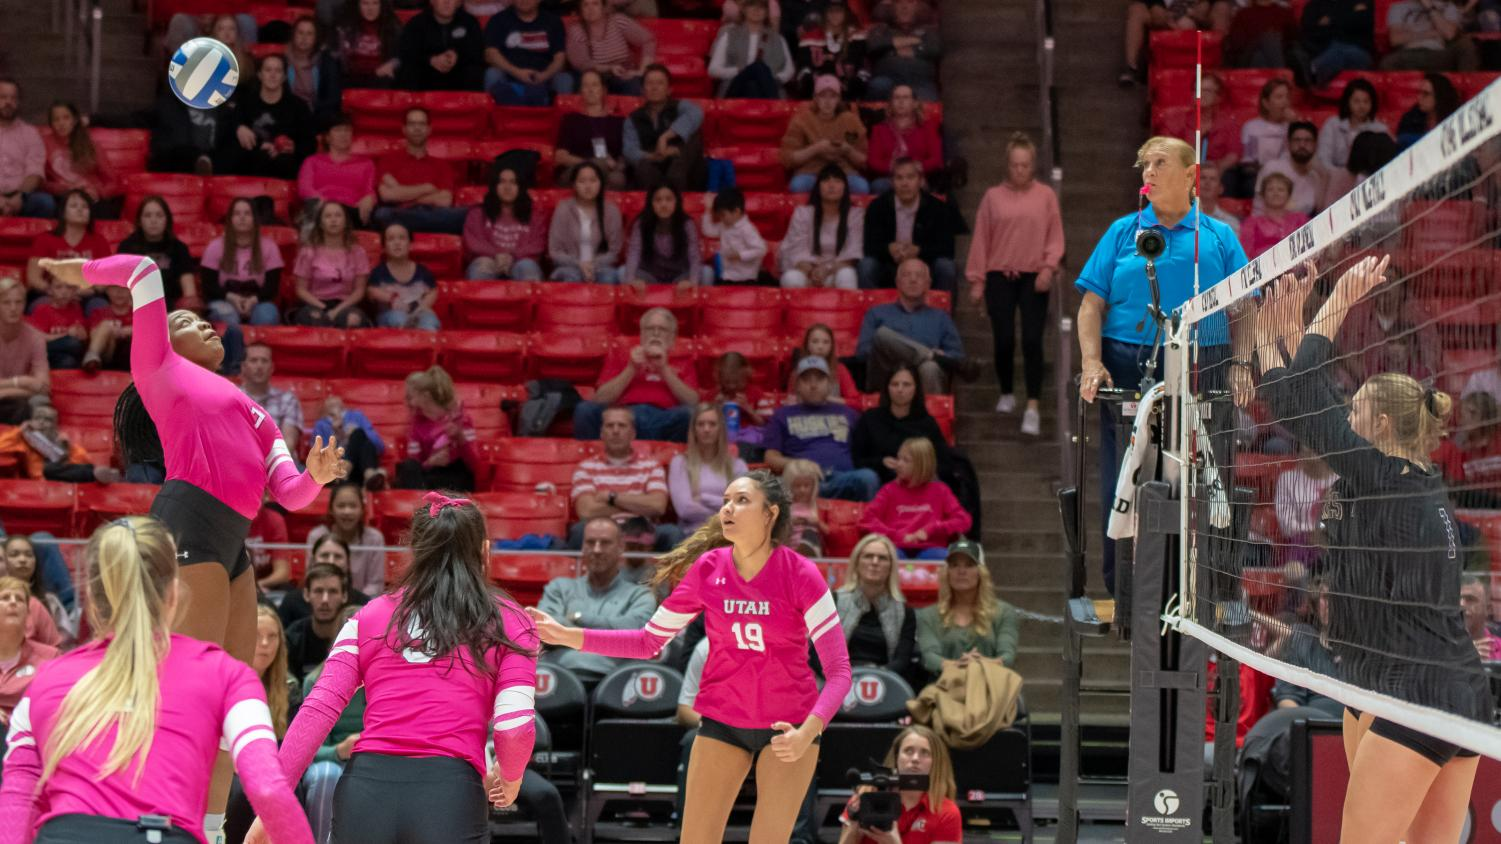 University of Utah Outside Hitter Zoe Weatherington (7) goes for the kill in an NCAA Volleyball match vs. The Washington Huskies at the Jon M. Huntsman Center in Salt Lake City, Utah on Friday, Oct. 25, 2019. (Photo by Abu Asib | The Daily Utah Chronicle)